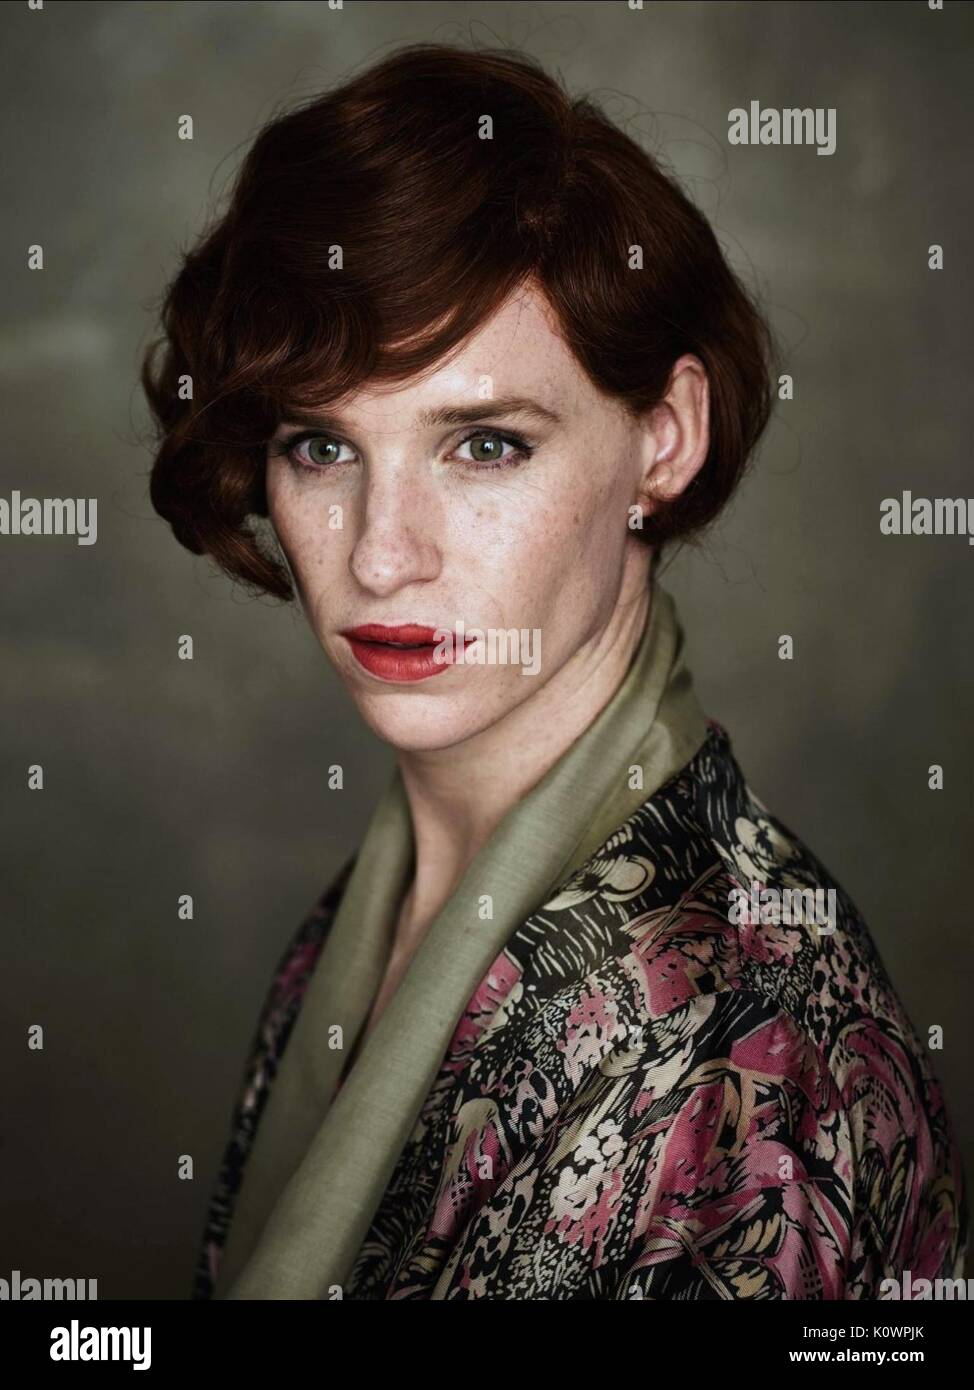 EDDIE REDMAYNE THE DANISH GIRL (2015) - Stock Image